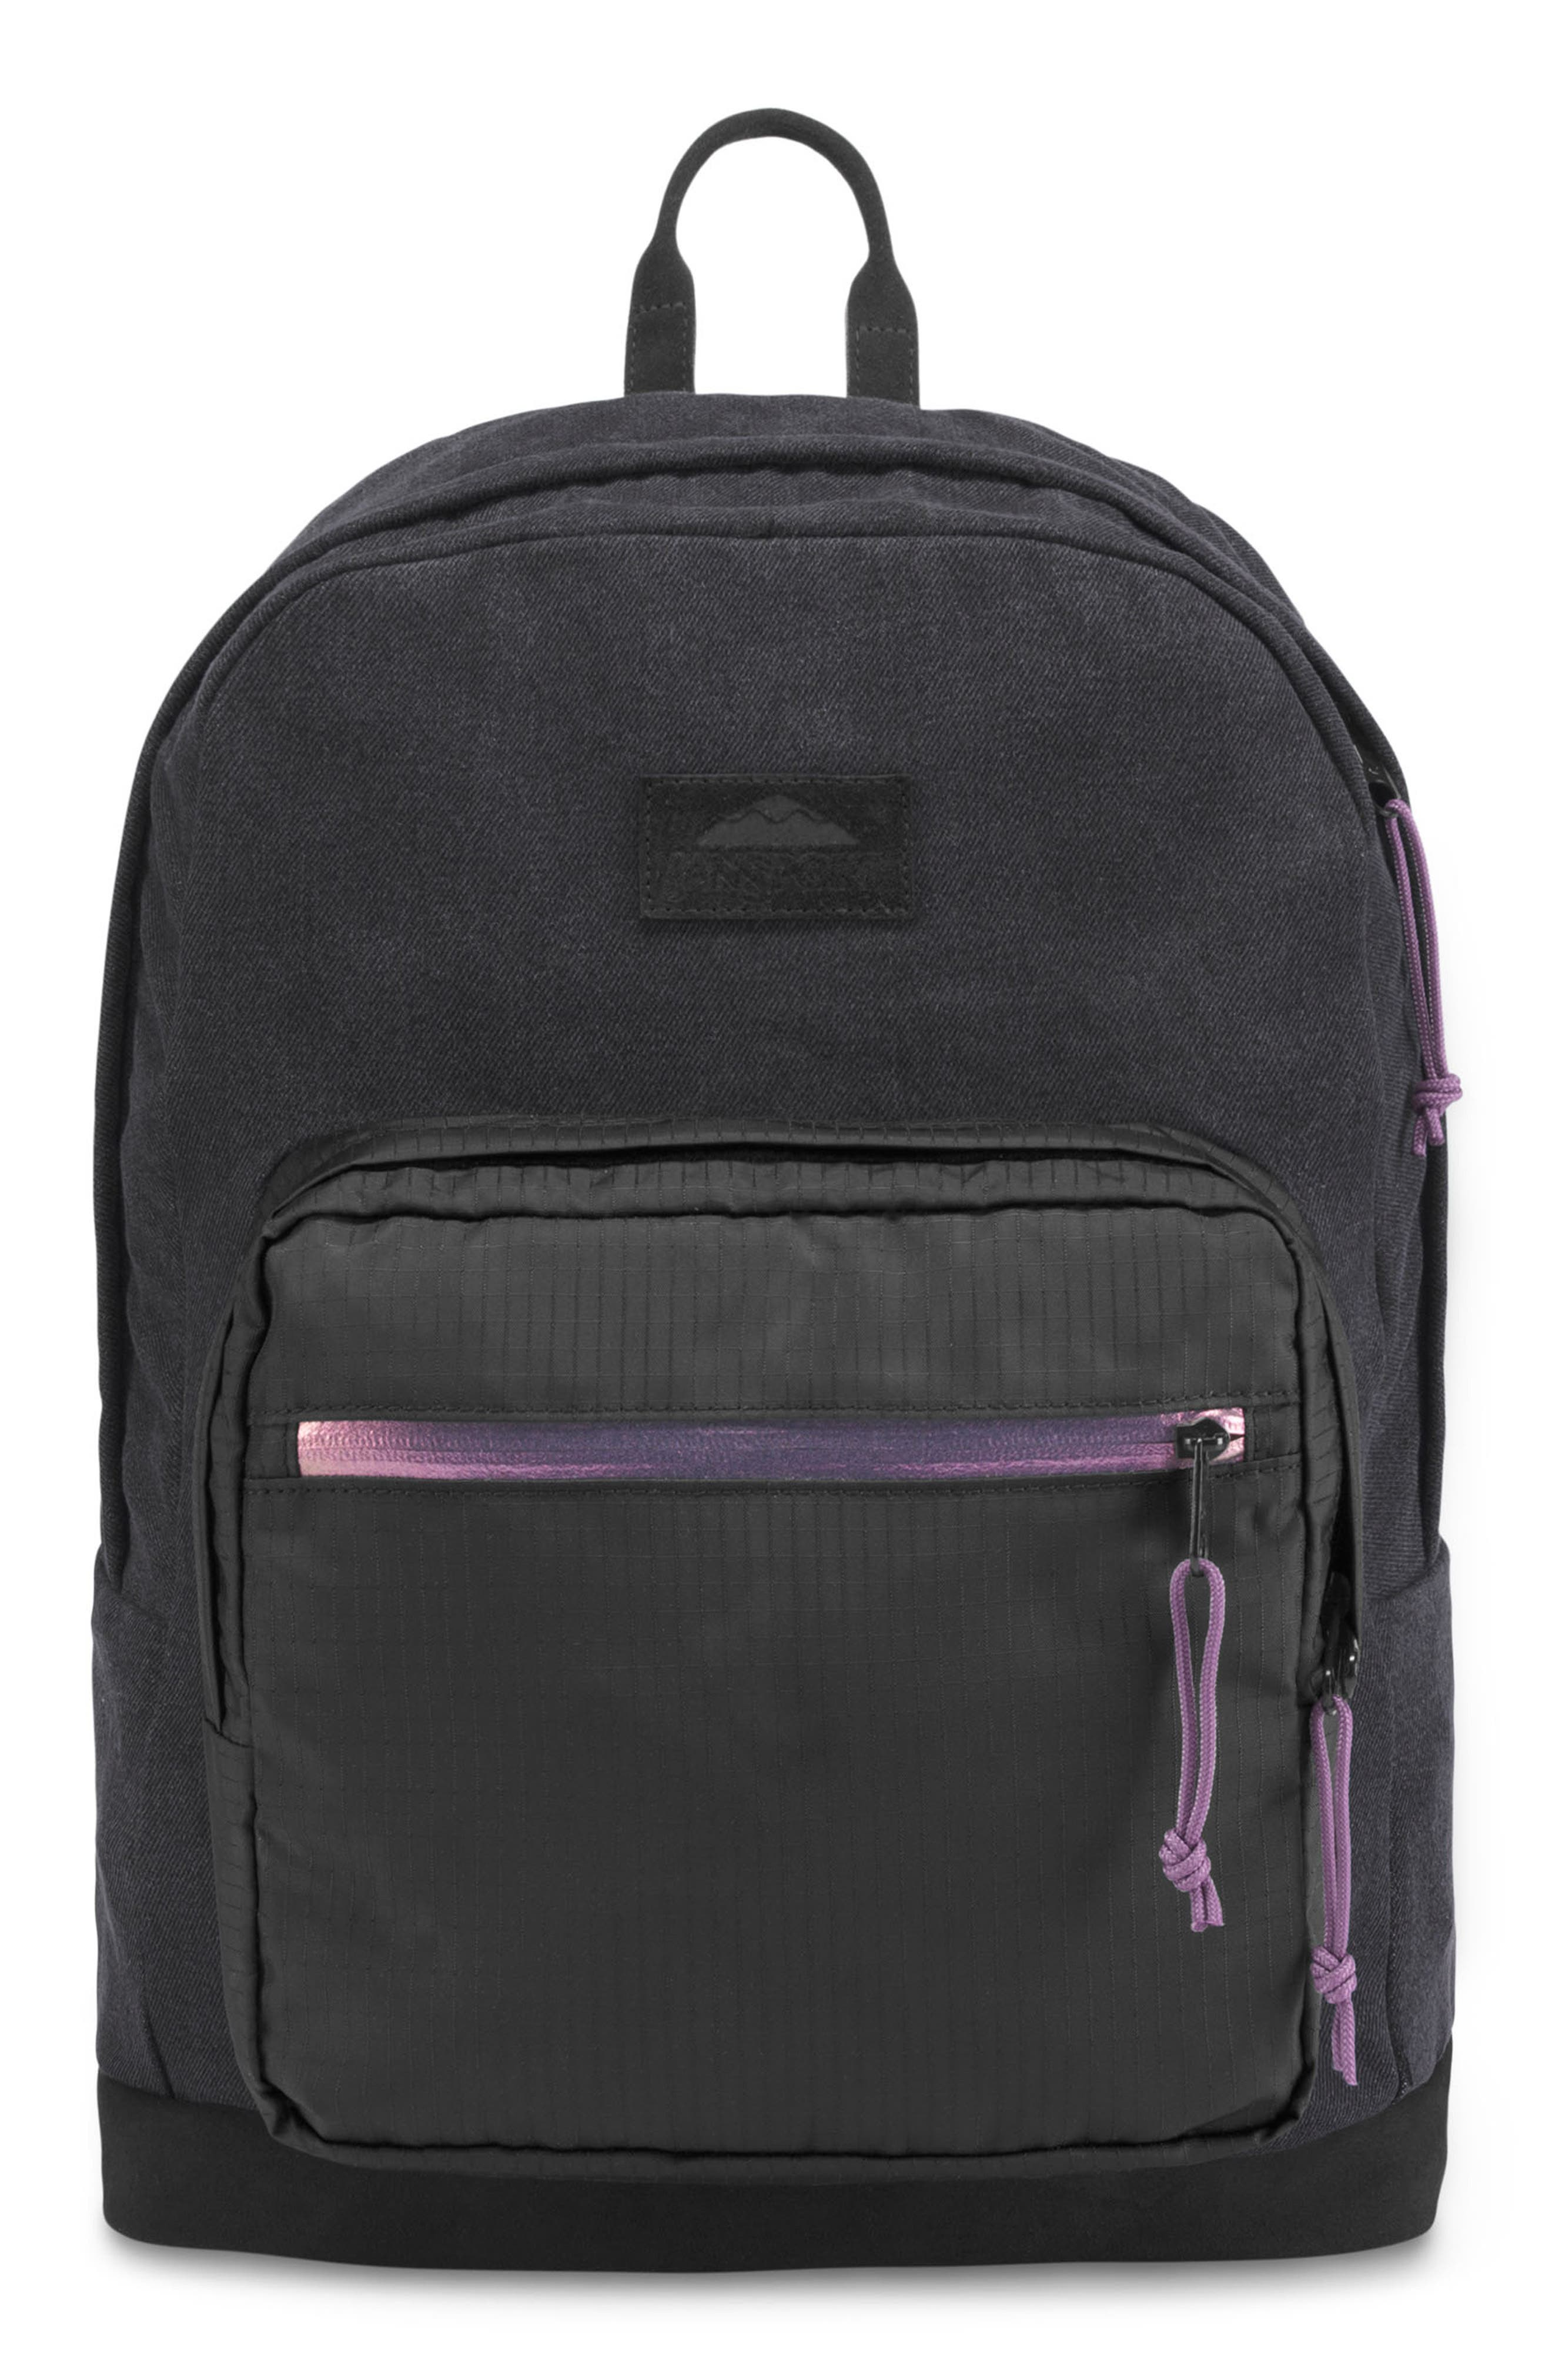 Right Pack Backpack,                             Main thumbnail 1, color,                             001